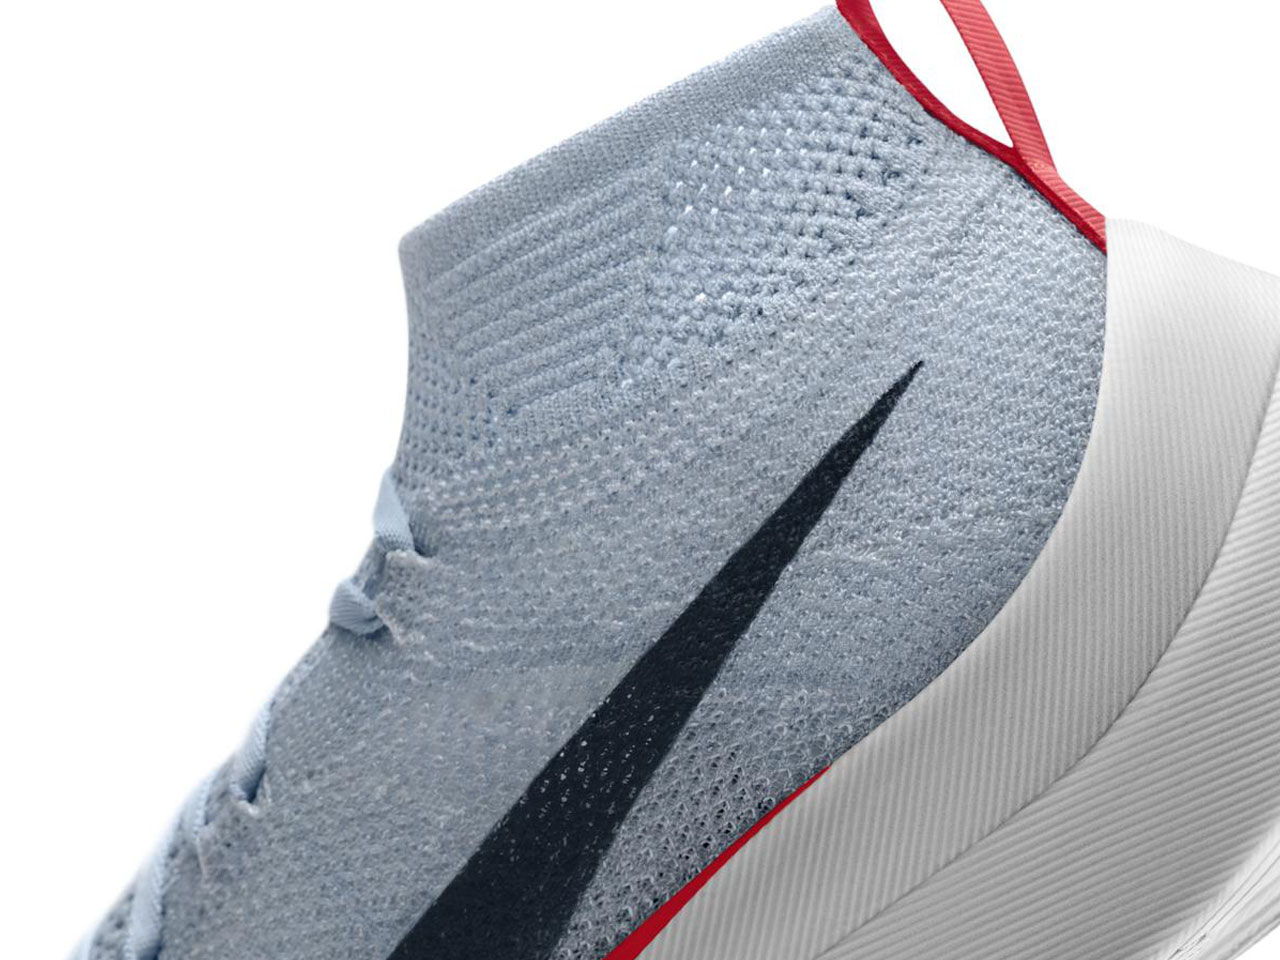 213af14da83 The fastest shoes in the world  Nike and Adidas reveal shoes ...